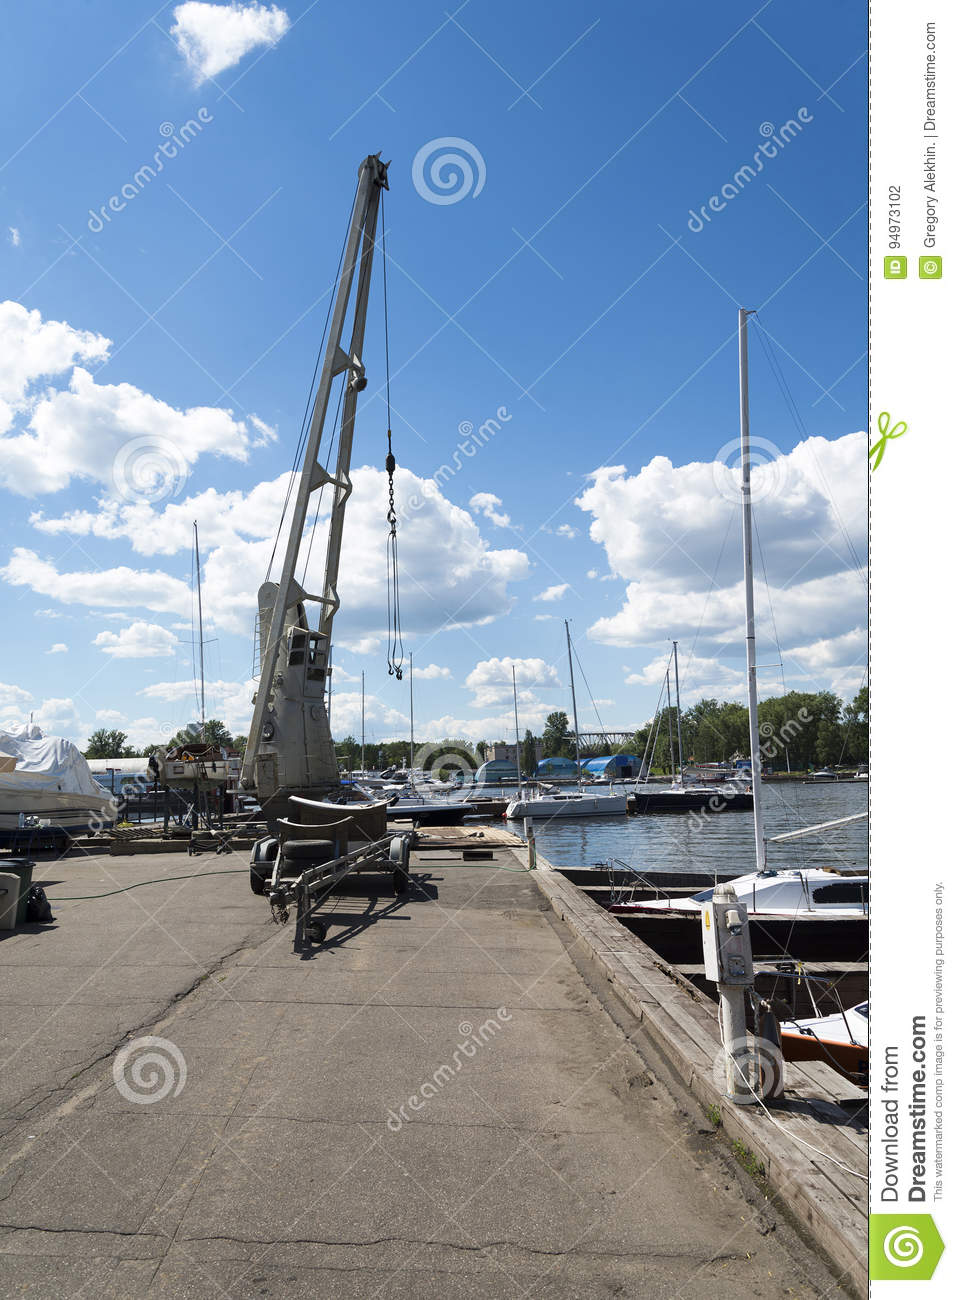 The little crane on the dock.